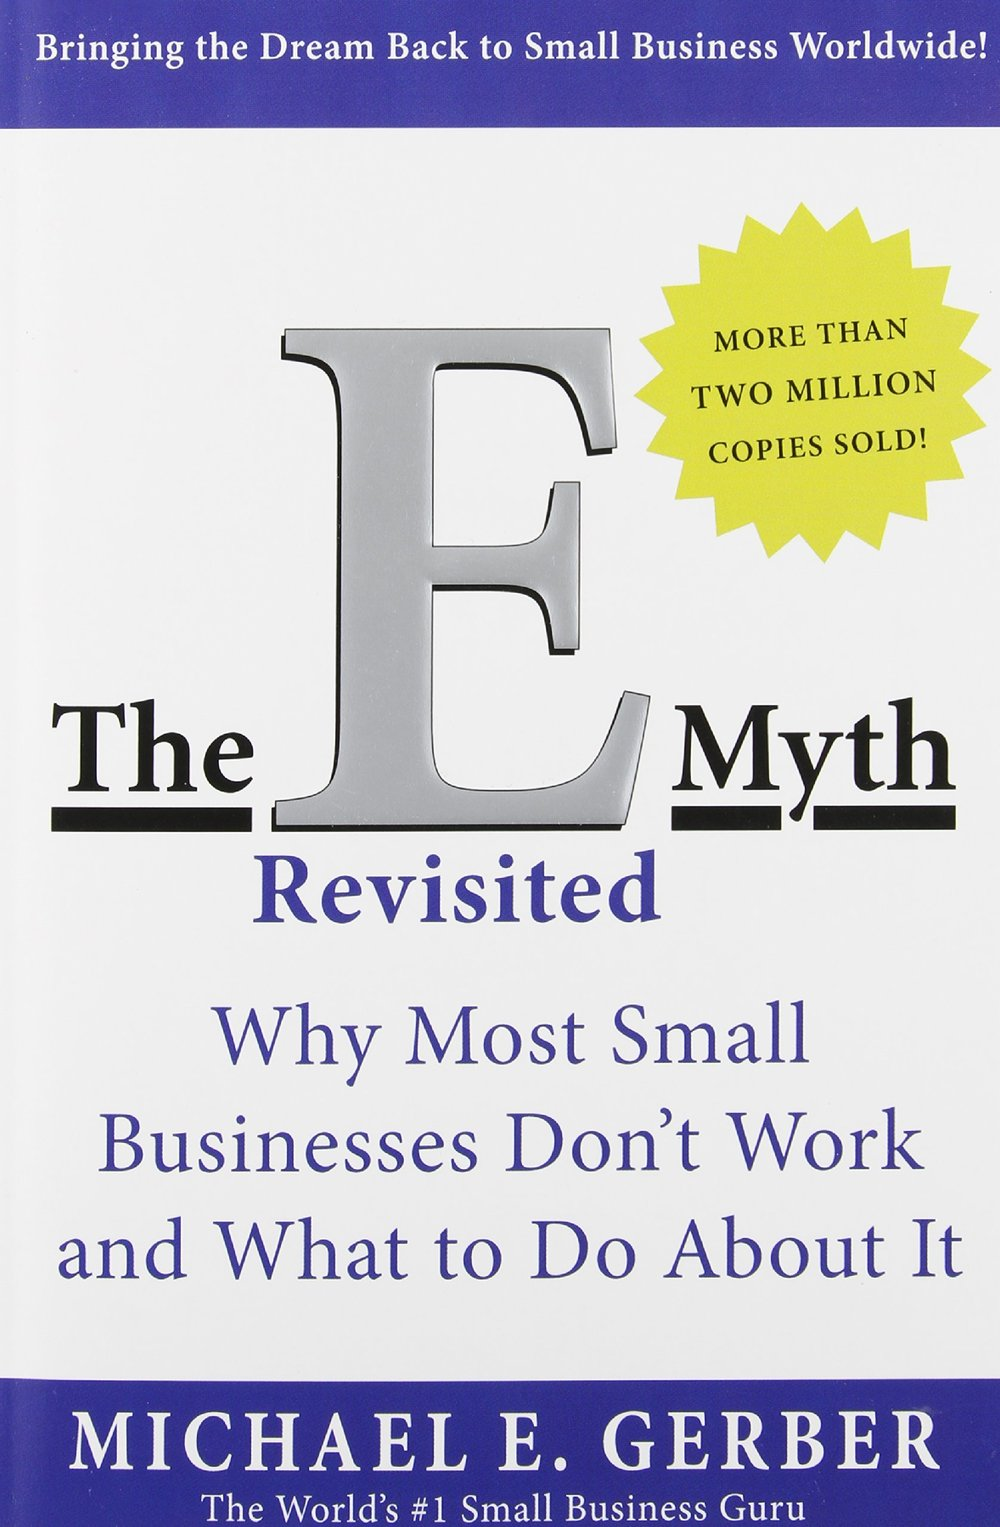 The-E-Myth-Revisted-cover.jpg